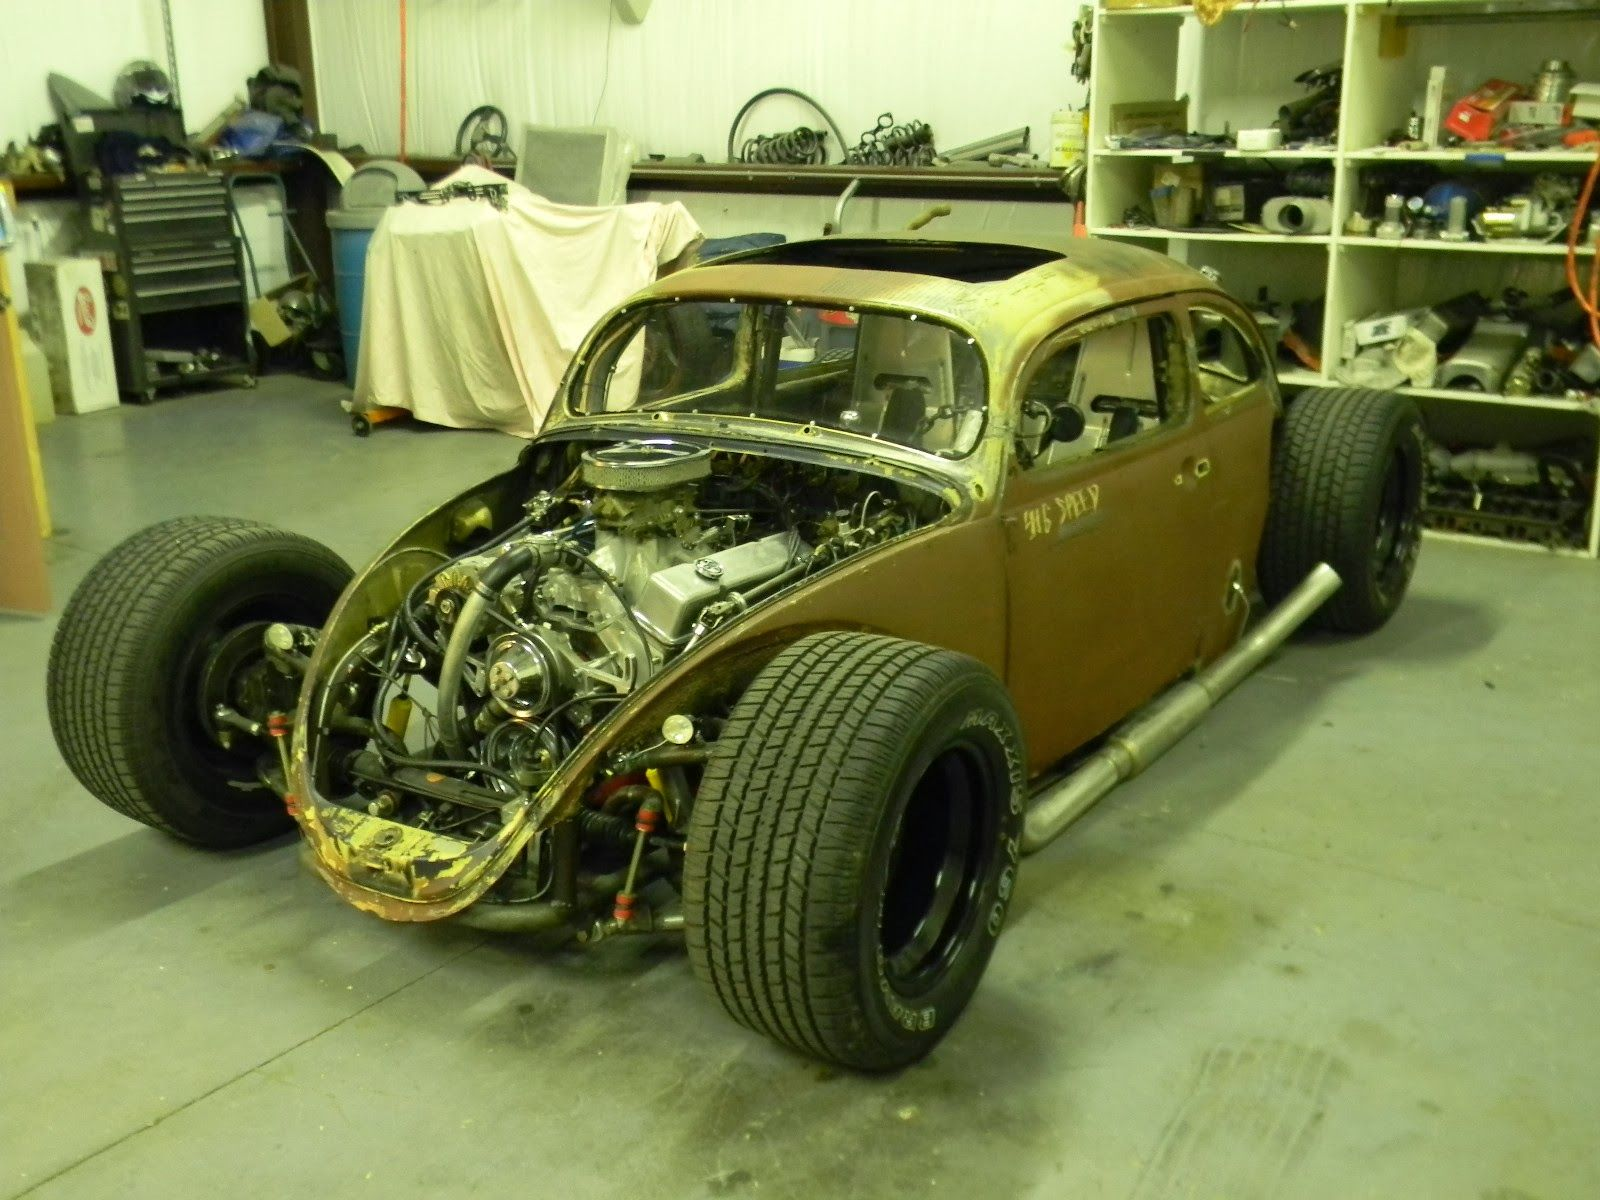 Special cars volkswagen beetle bug v8 - American Rat Rod Cars Trucks For Sale 1969 Vw Beetle Rat Rod